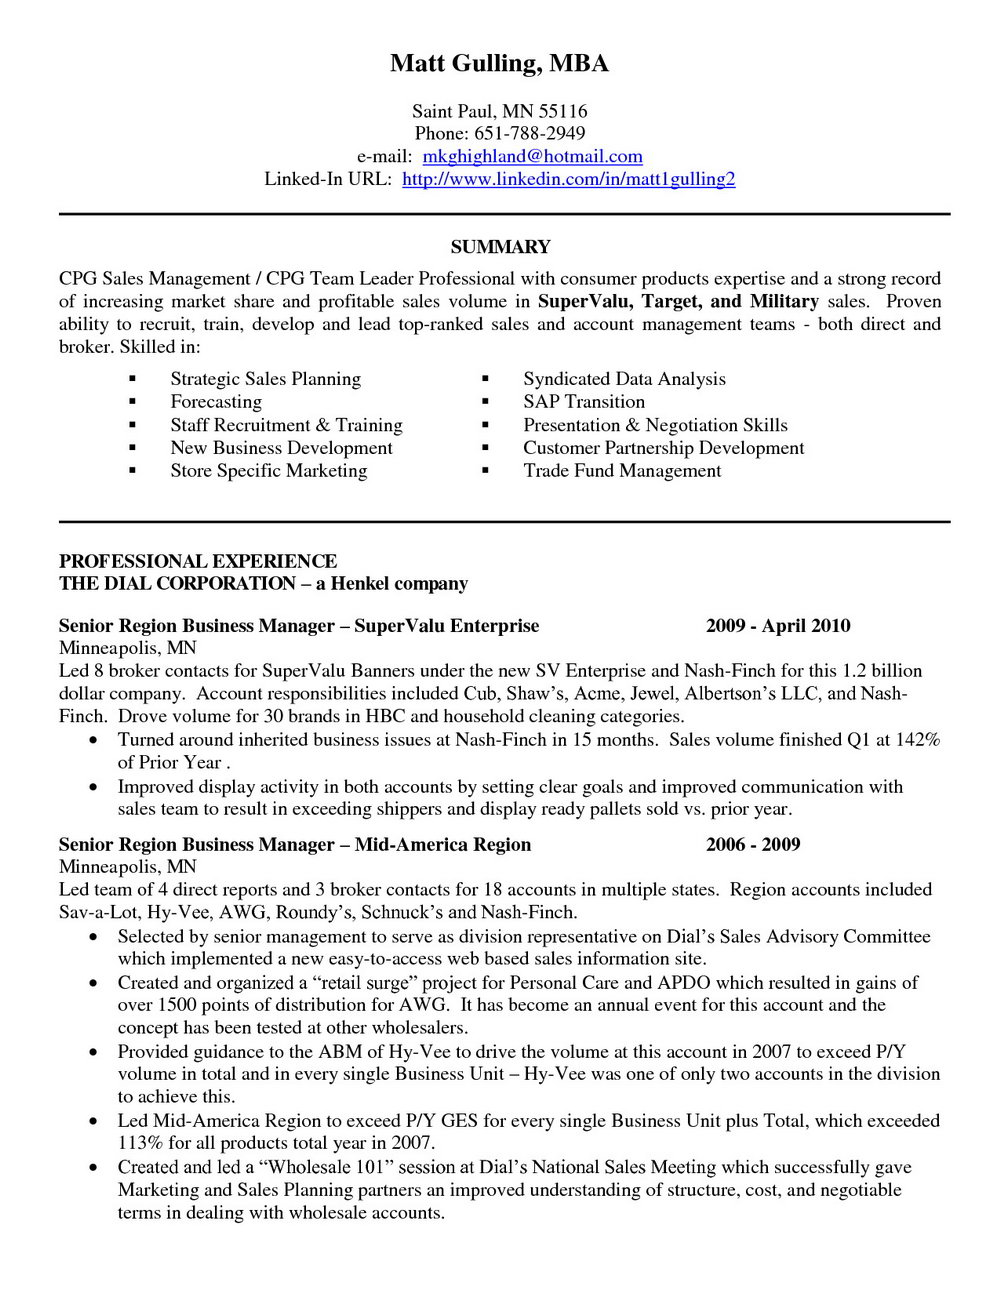 Best Site To Upload Resume In Usa